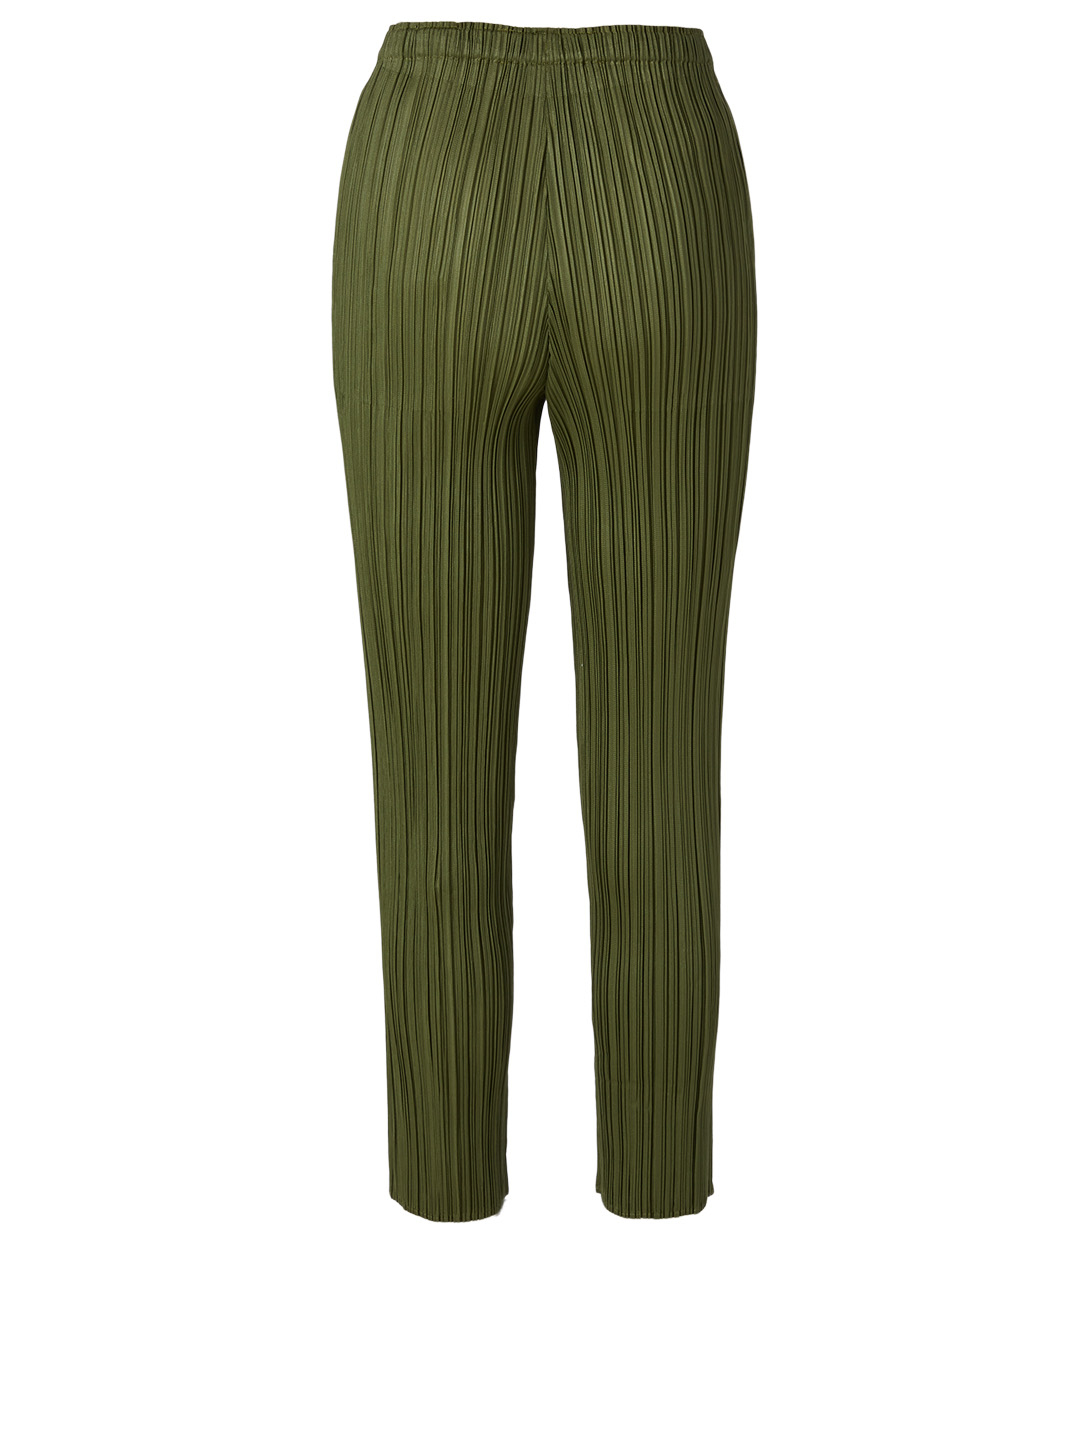 PLEATS PLEASE ISSEY MIYAKE Pleated Cropped Pants Women's Green